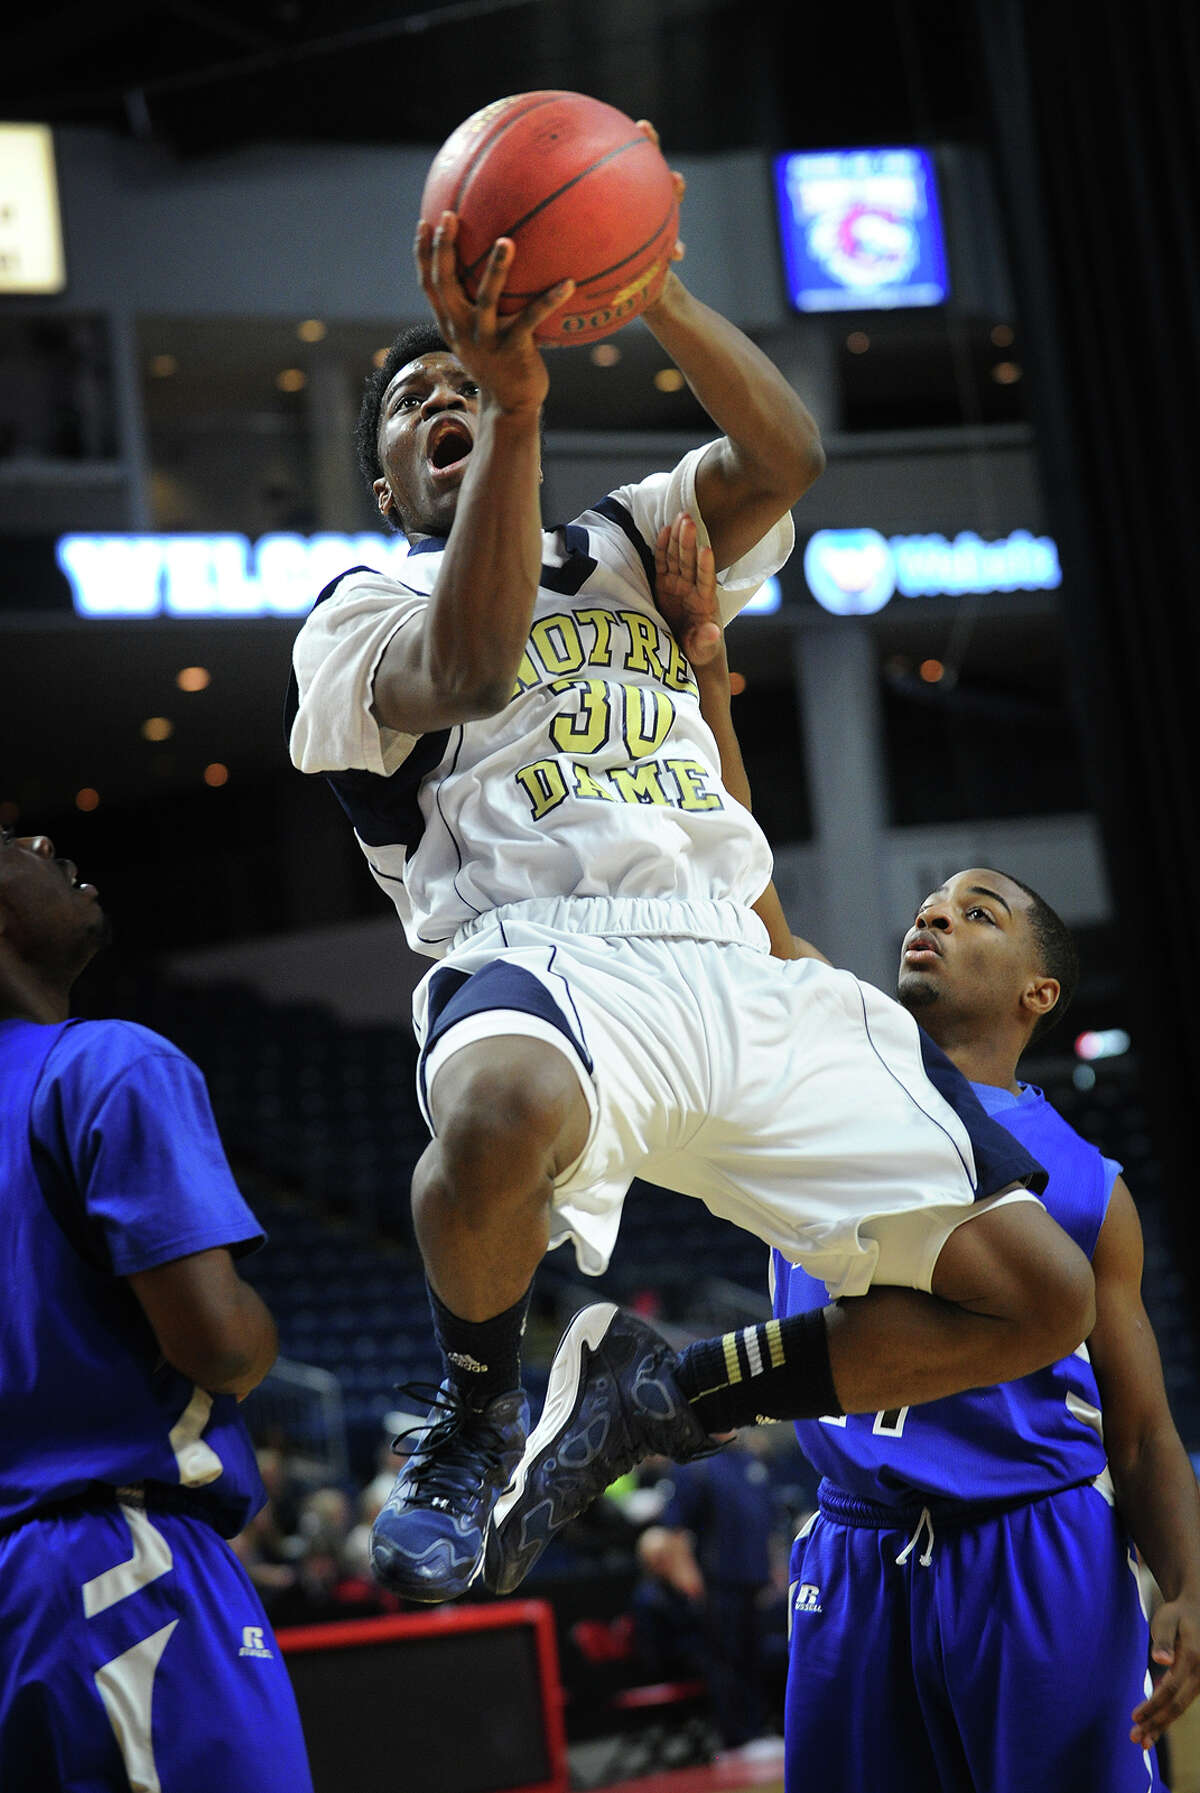 Notre Dame of Fairfield's C.J. Davidson drives to the basket between two Bunnell defenders during their boys basketball matchup at the Arena at Harbor Yard in Bridgeport, Conn. on Monday, January 27, 2014.